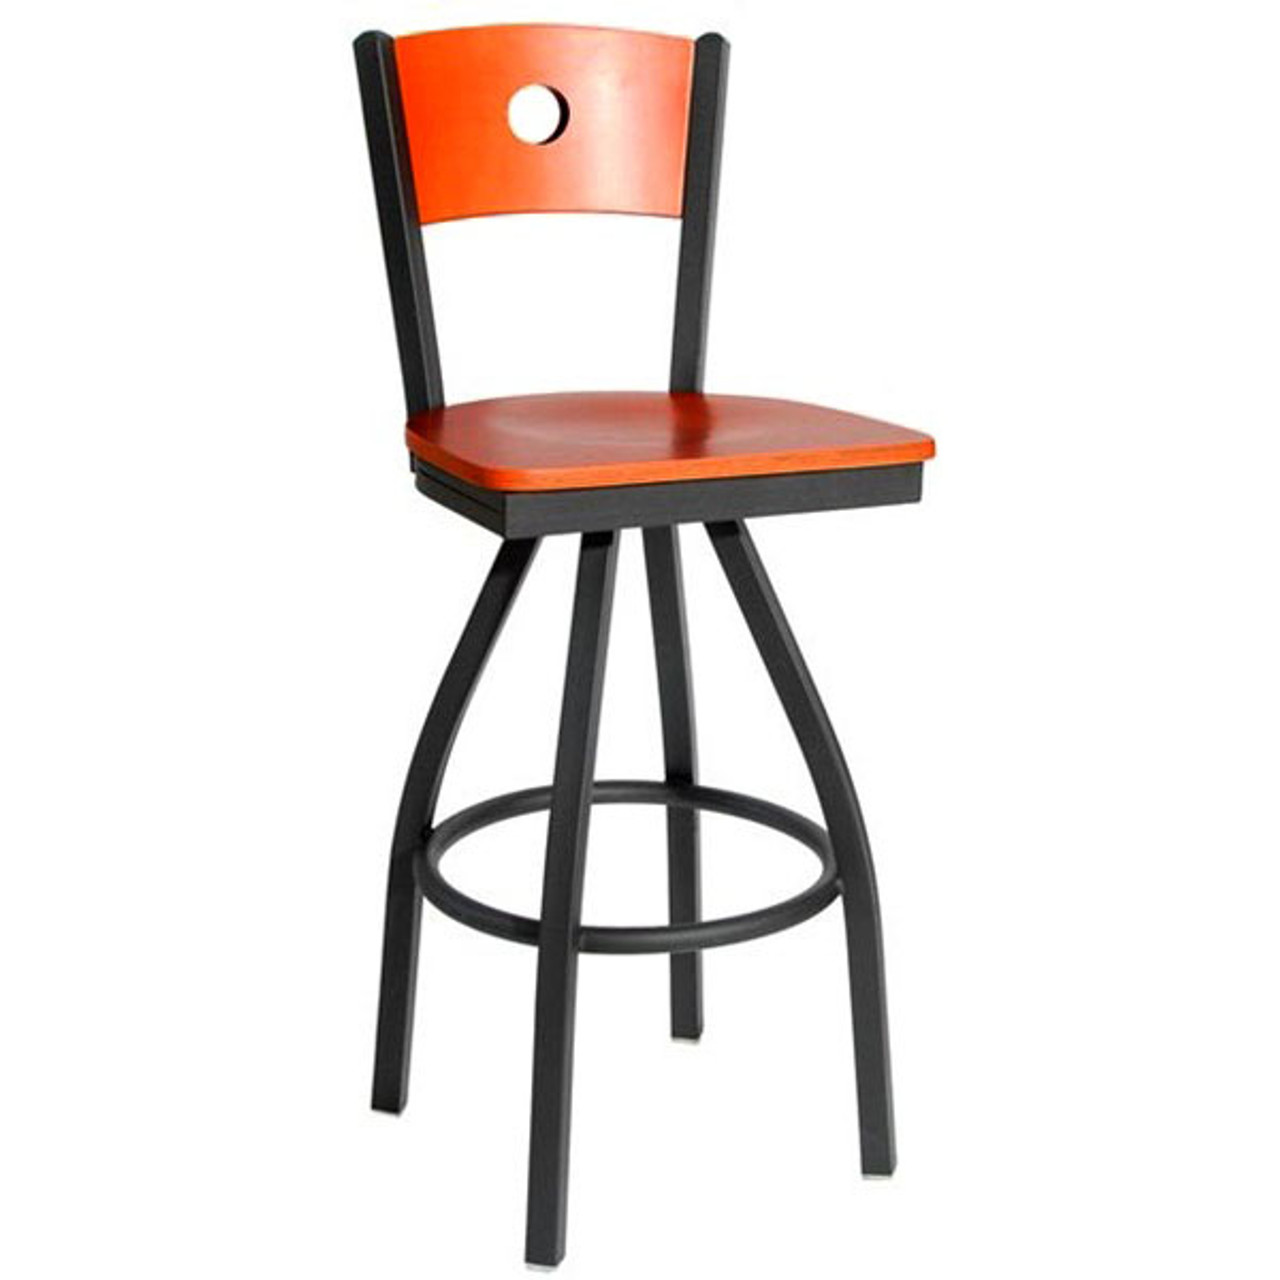 Swell Bfm Seating Darby Metal Circle Wood Back And Seat Restaurant Swivel Bar Stool 2152Sw Sb Bfms Machost Co Dining Chair Design Ideas Machostcouk